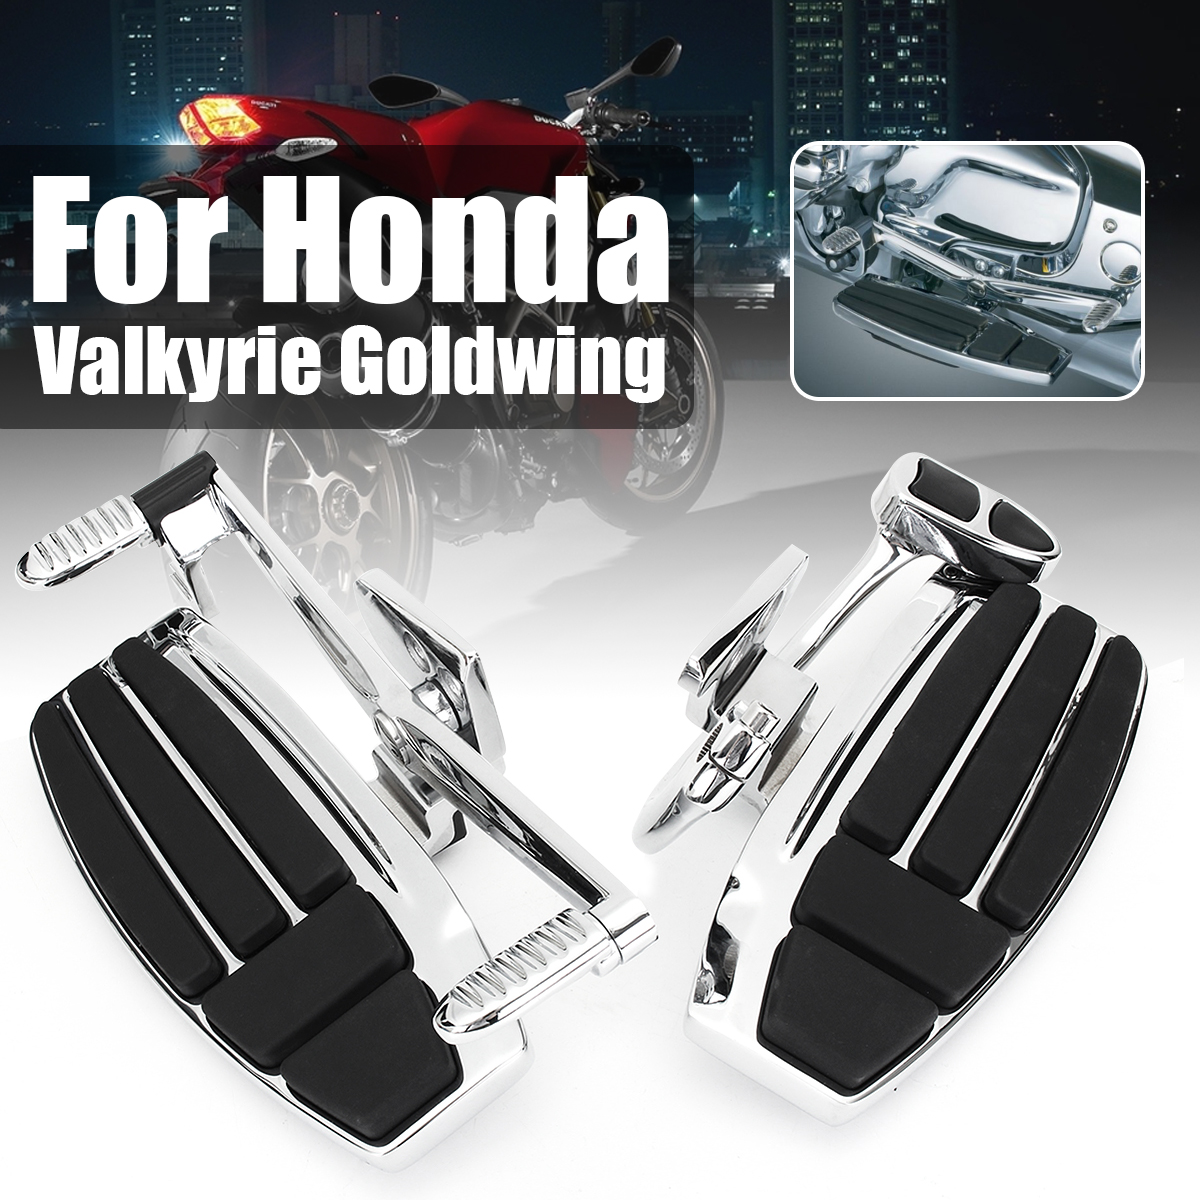 Aluminum Alloy Driver Front Motorbike Foot Board Peg for Honda Valkyrie 1800 2014-2015 Goldwing GL1800 2001-2016 F6B 2013-2016 headlight headlamp assembly for honda goldwing f6b gl1800 2012 2013 2014 2015